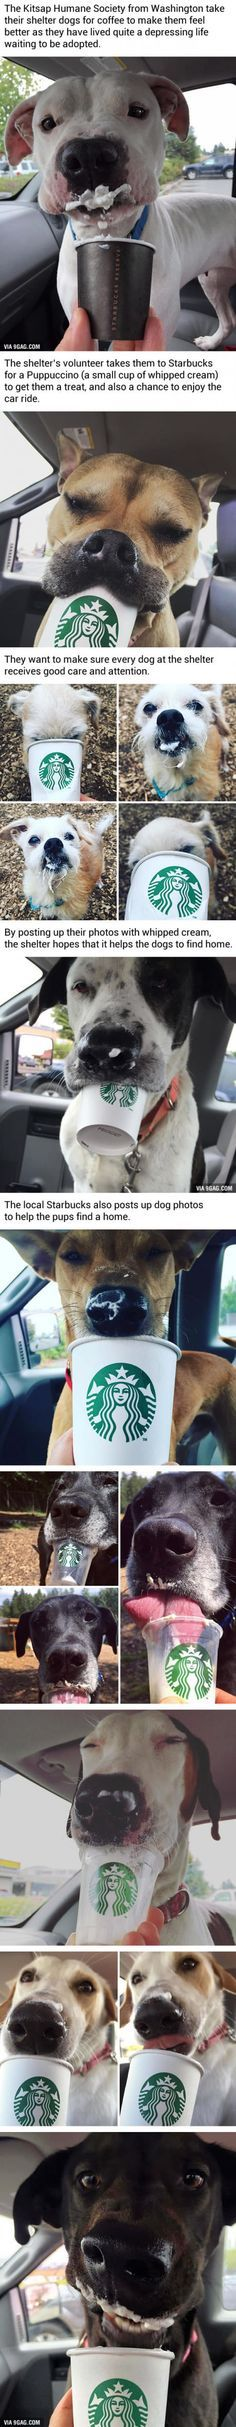 """Shelter Takes Dogs For """"Puppuccinos"""" To Help Them Find Home"""